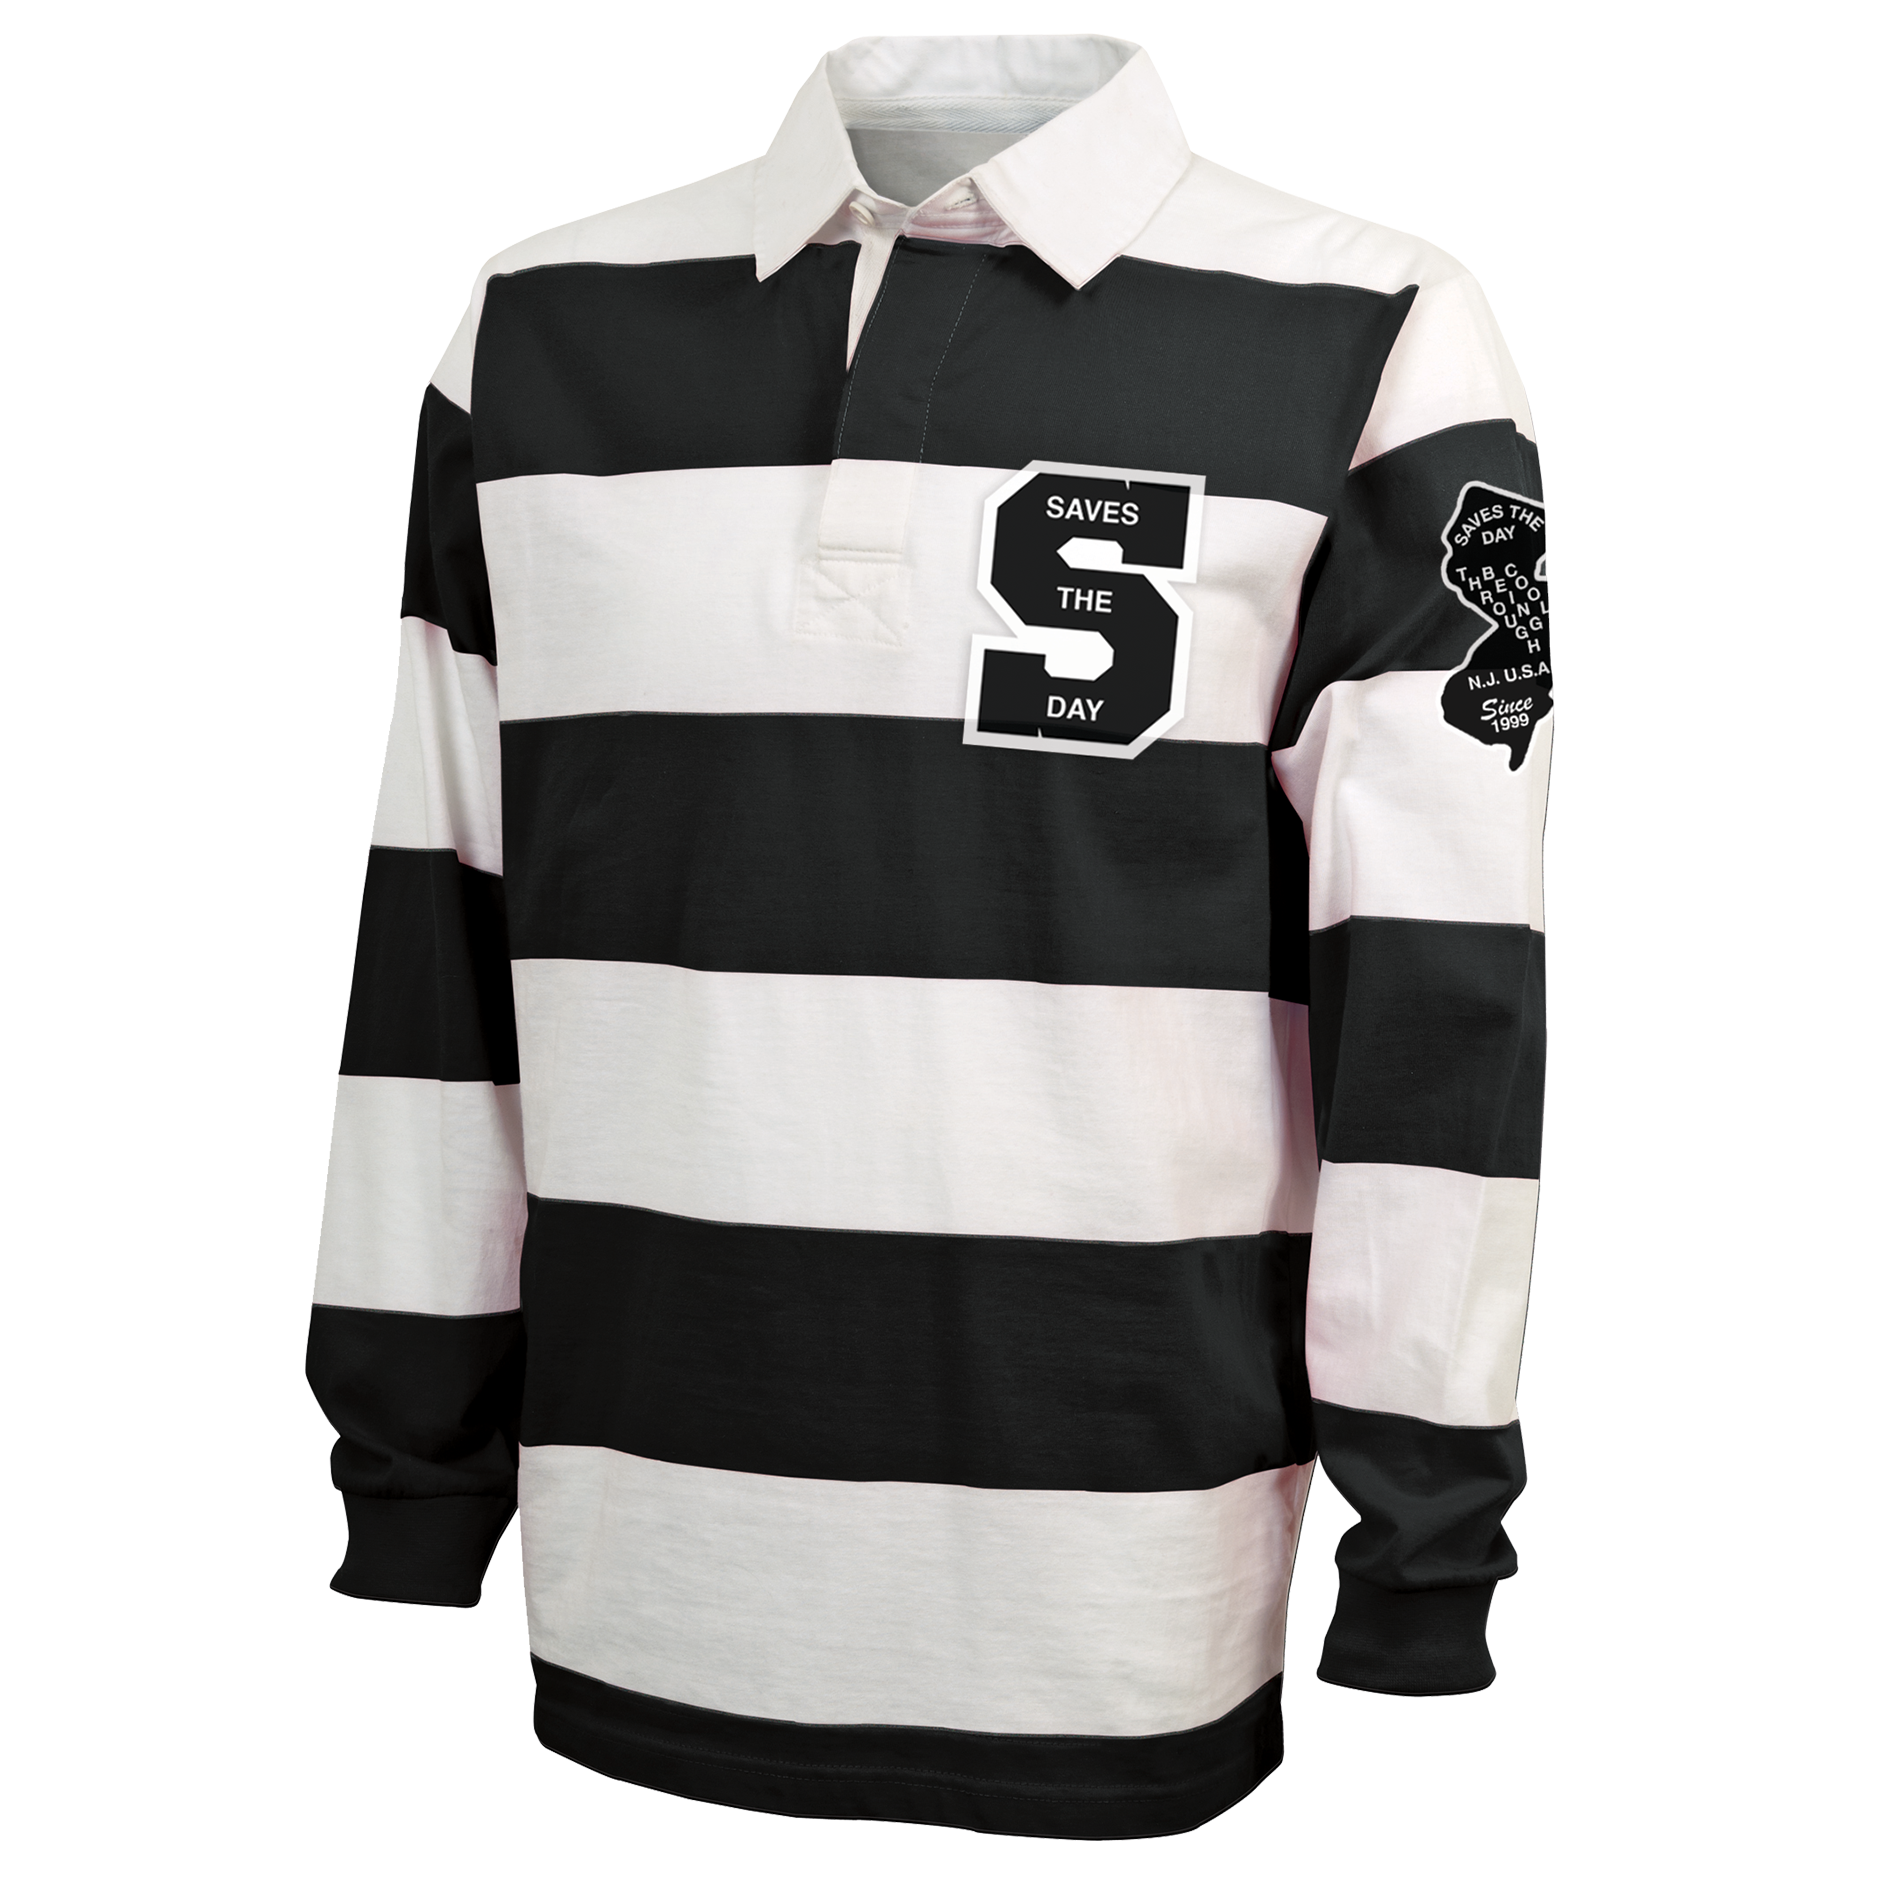 Saves The Day Rugby Shirt